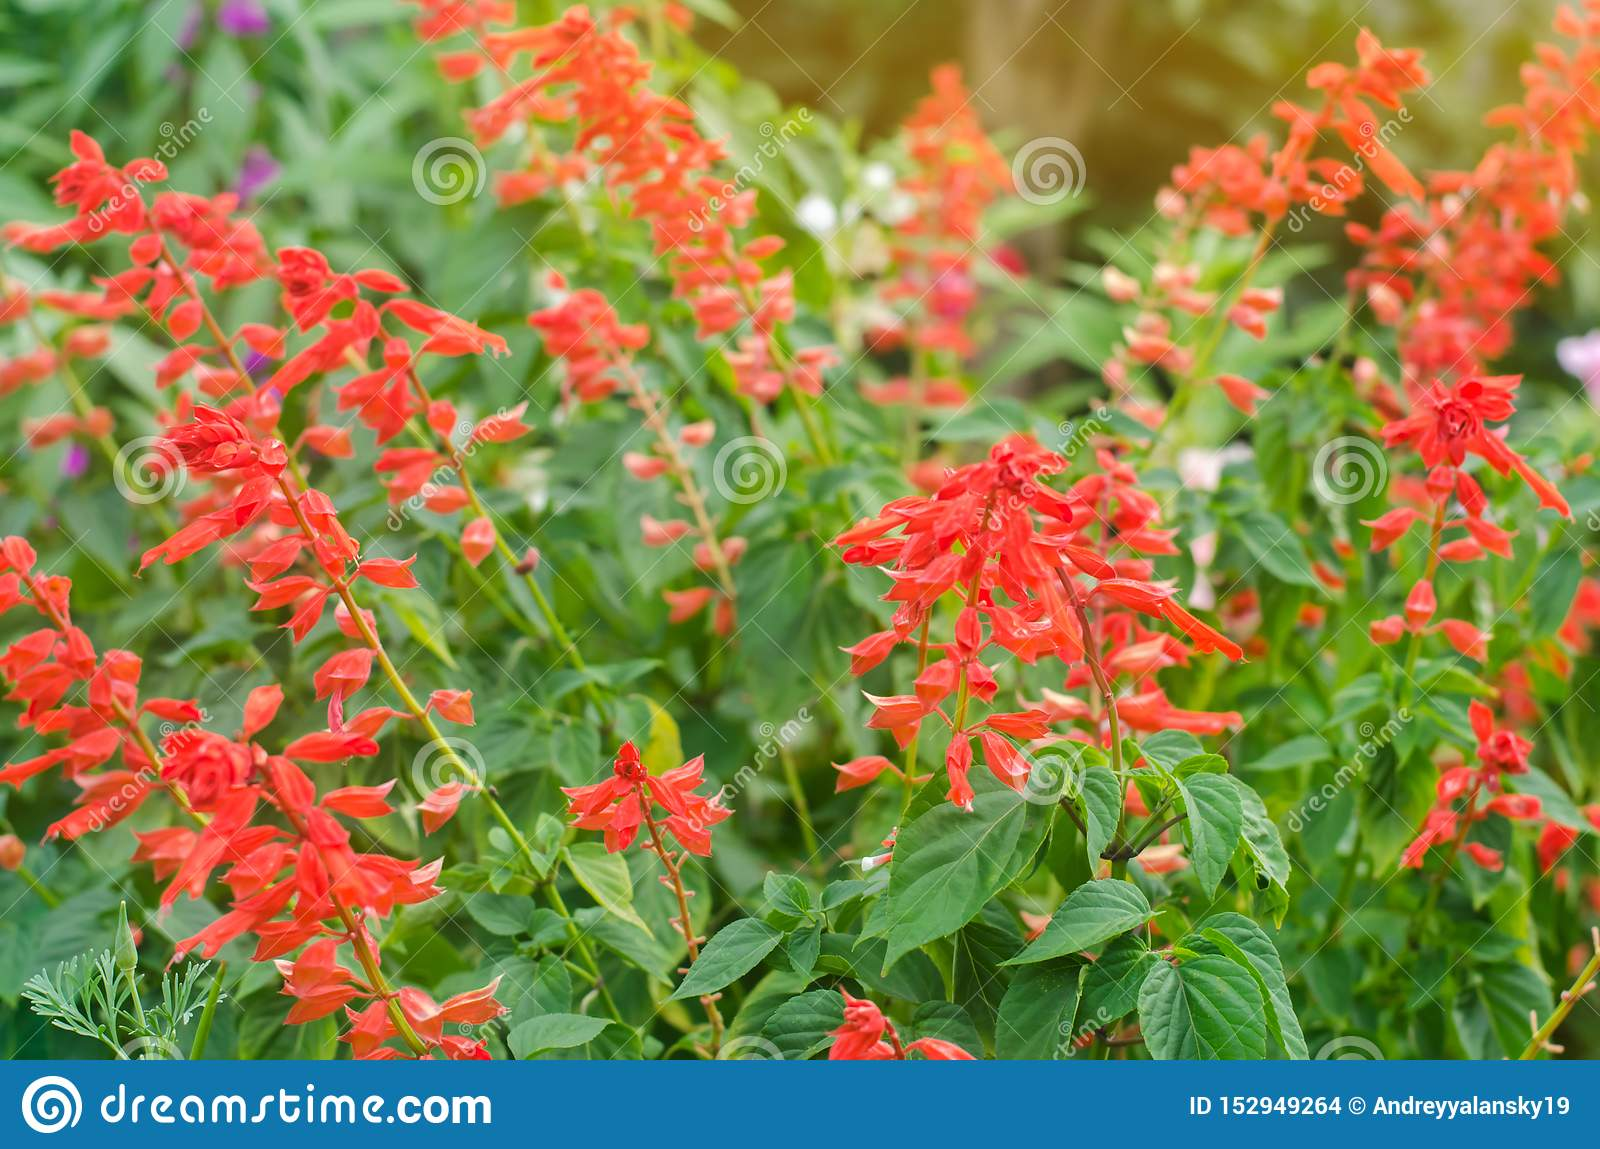 Beautiful Flower Red Salvia Grows In The Garden On A Sunny Day Gardening Planting Summer Flowers Natural Wallpaper Soft Stock Photo Image Of Fresh Herbal 152949264